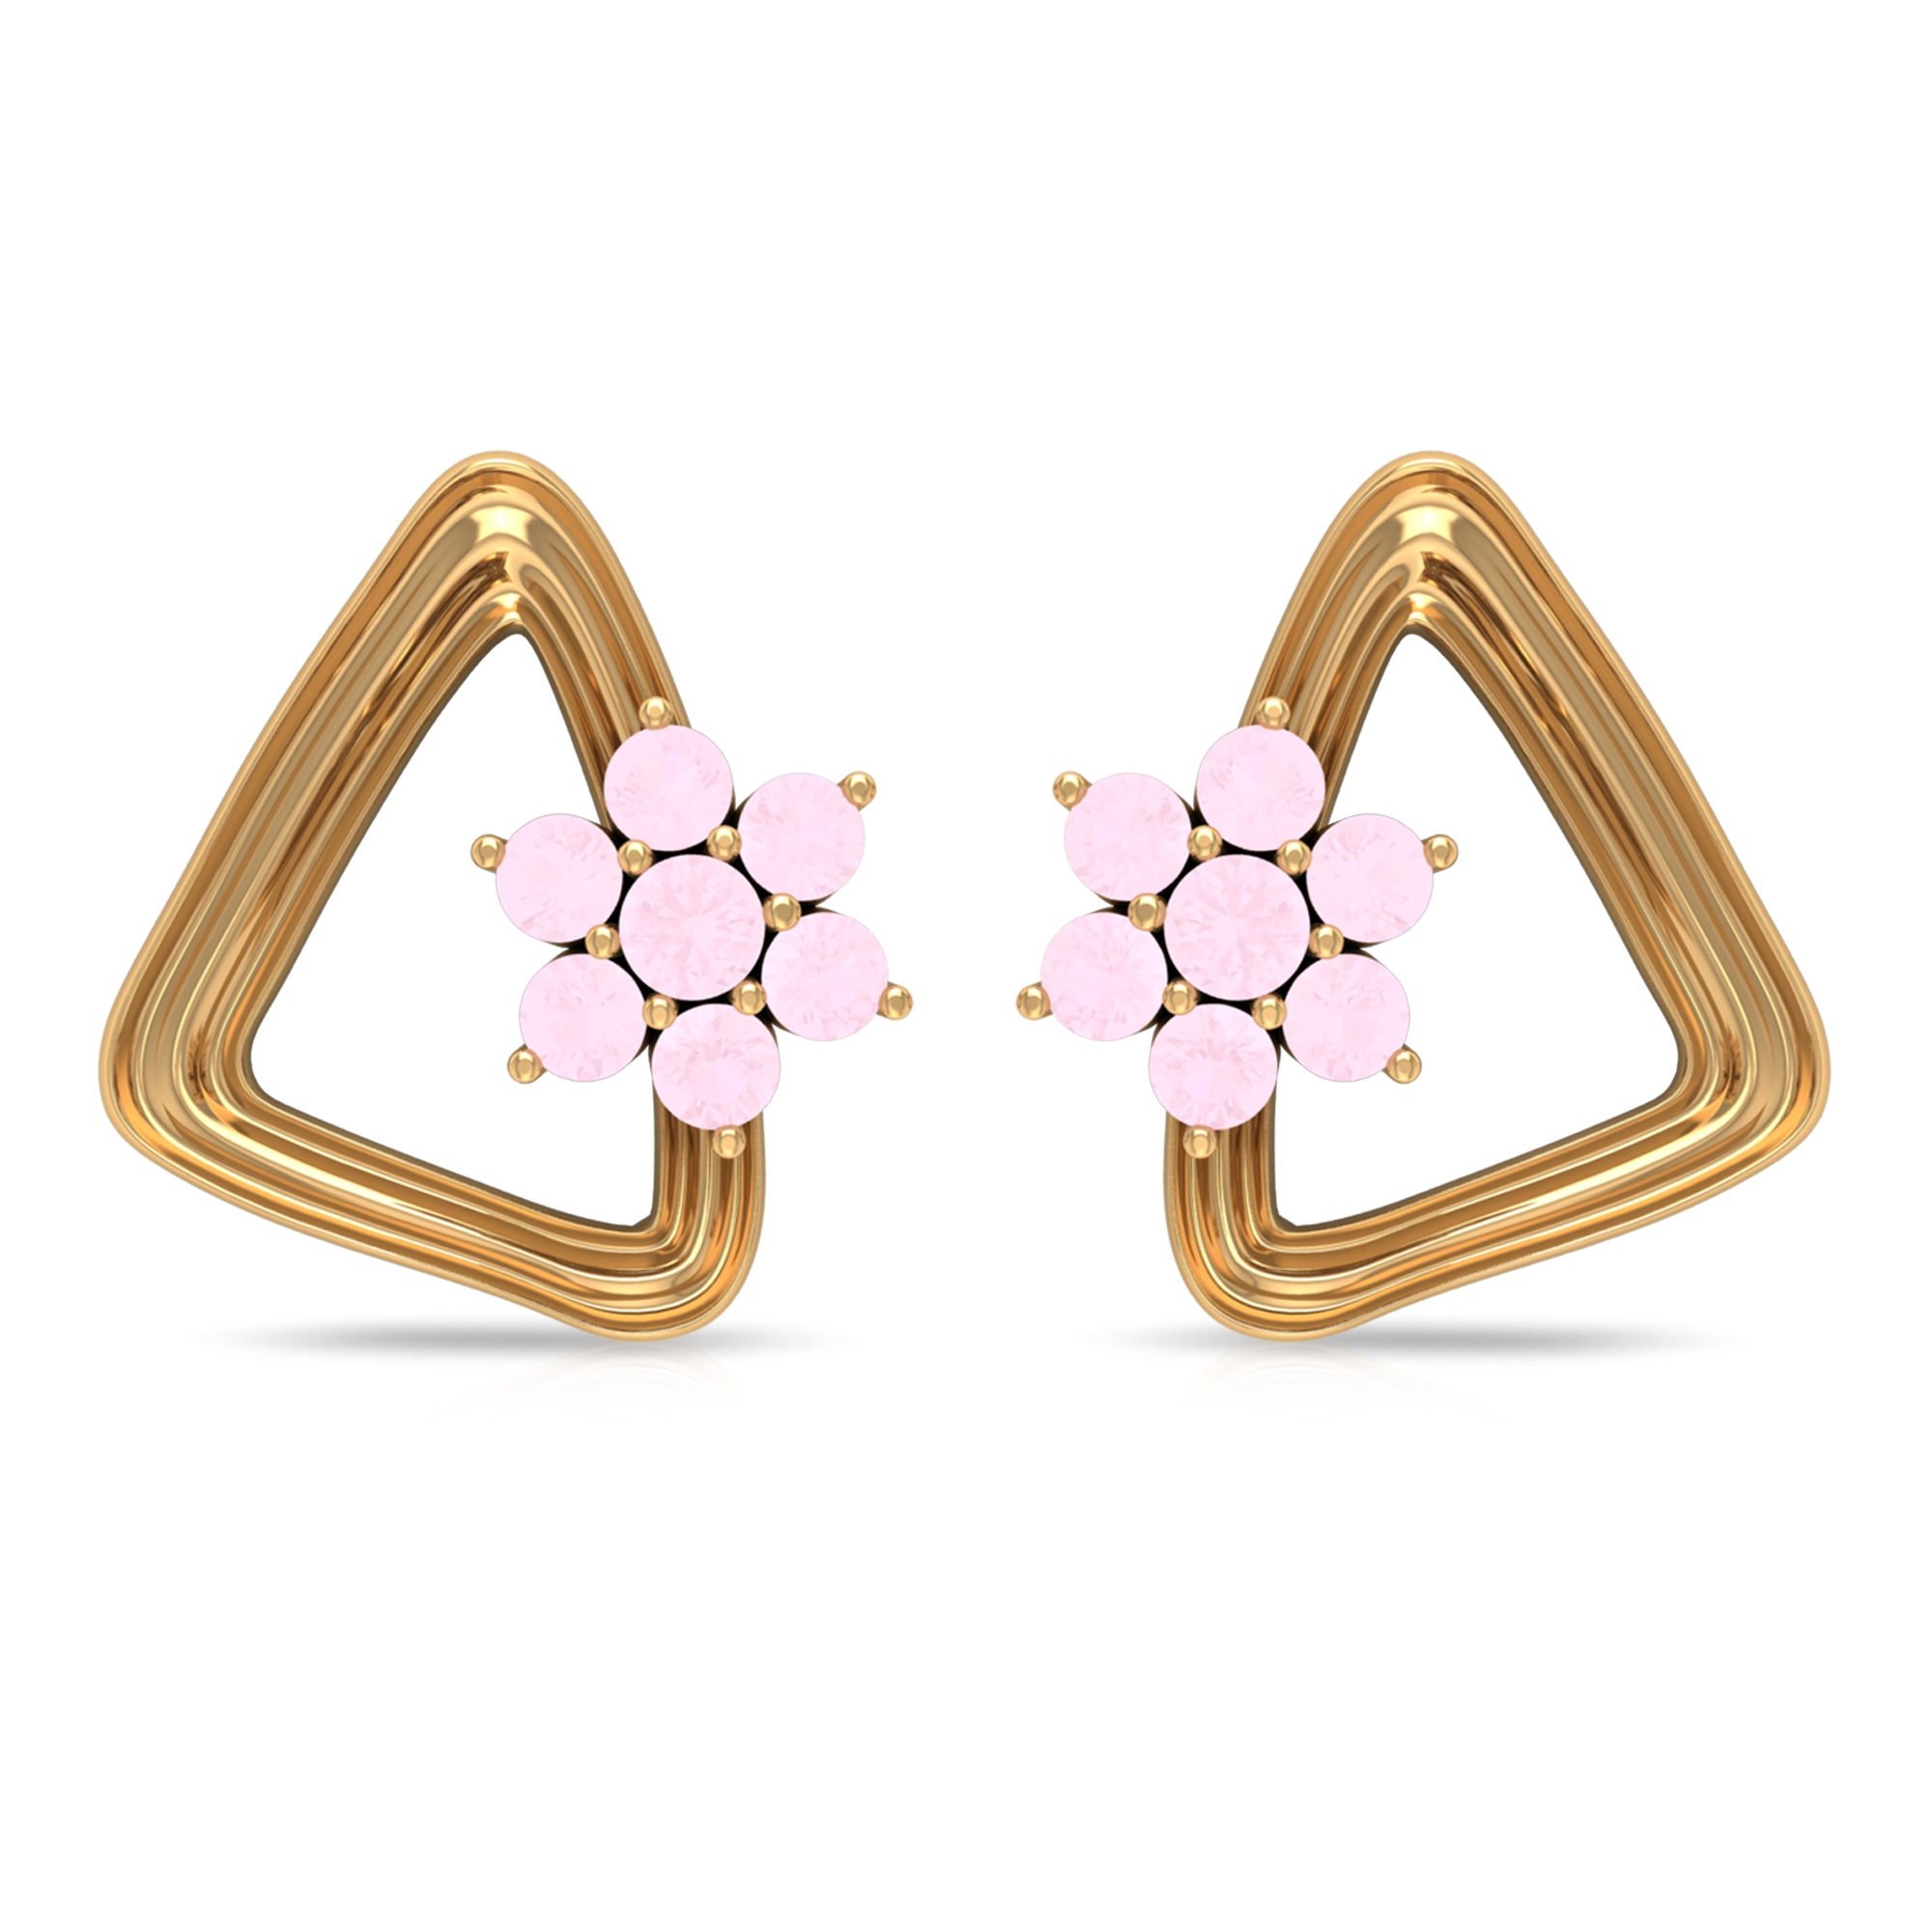 1/4 CT Gold Triangle Stud Earrings with White Topaz Flower